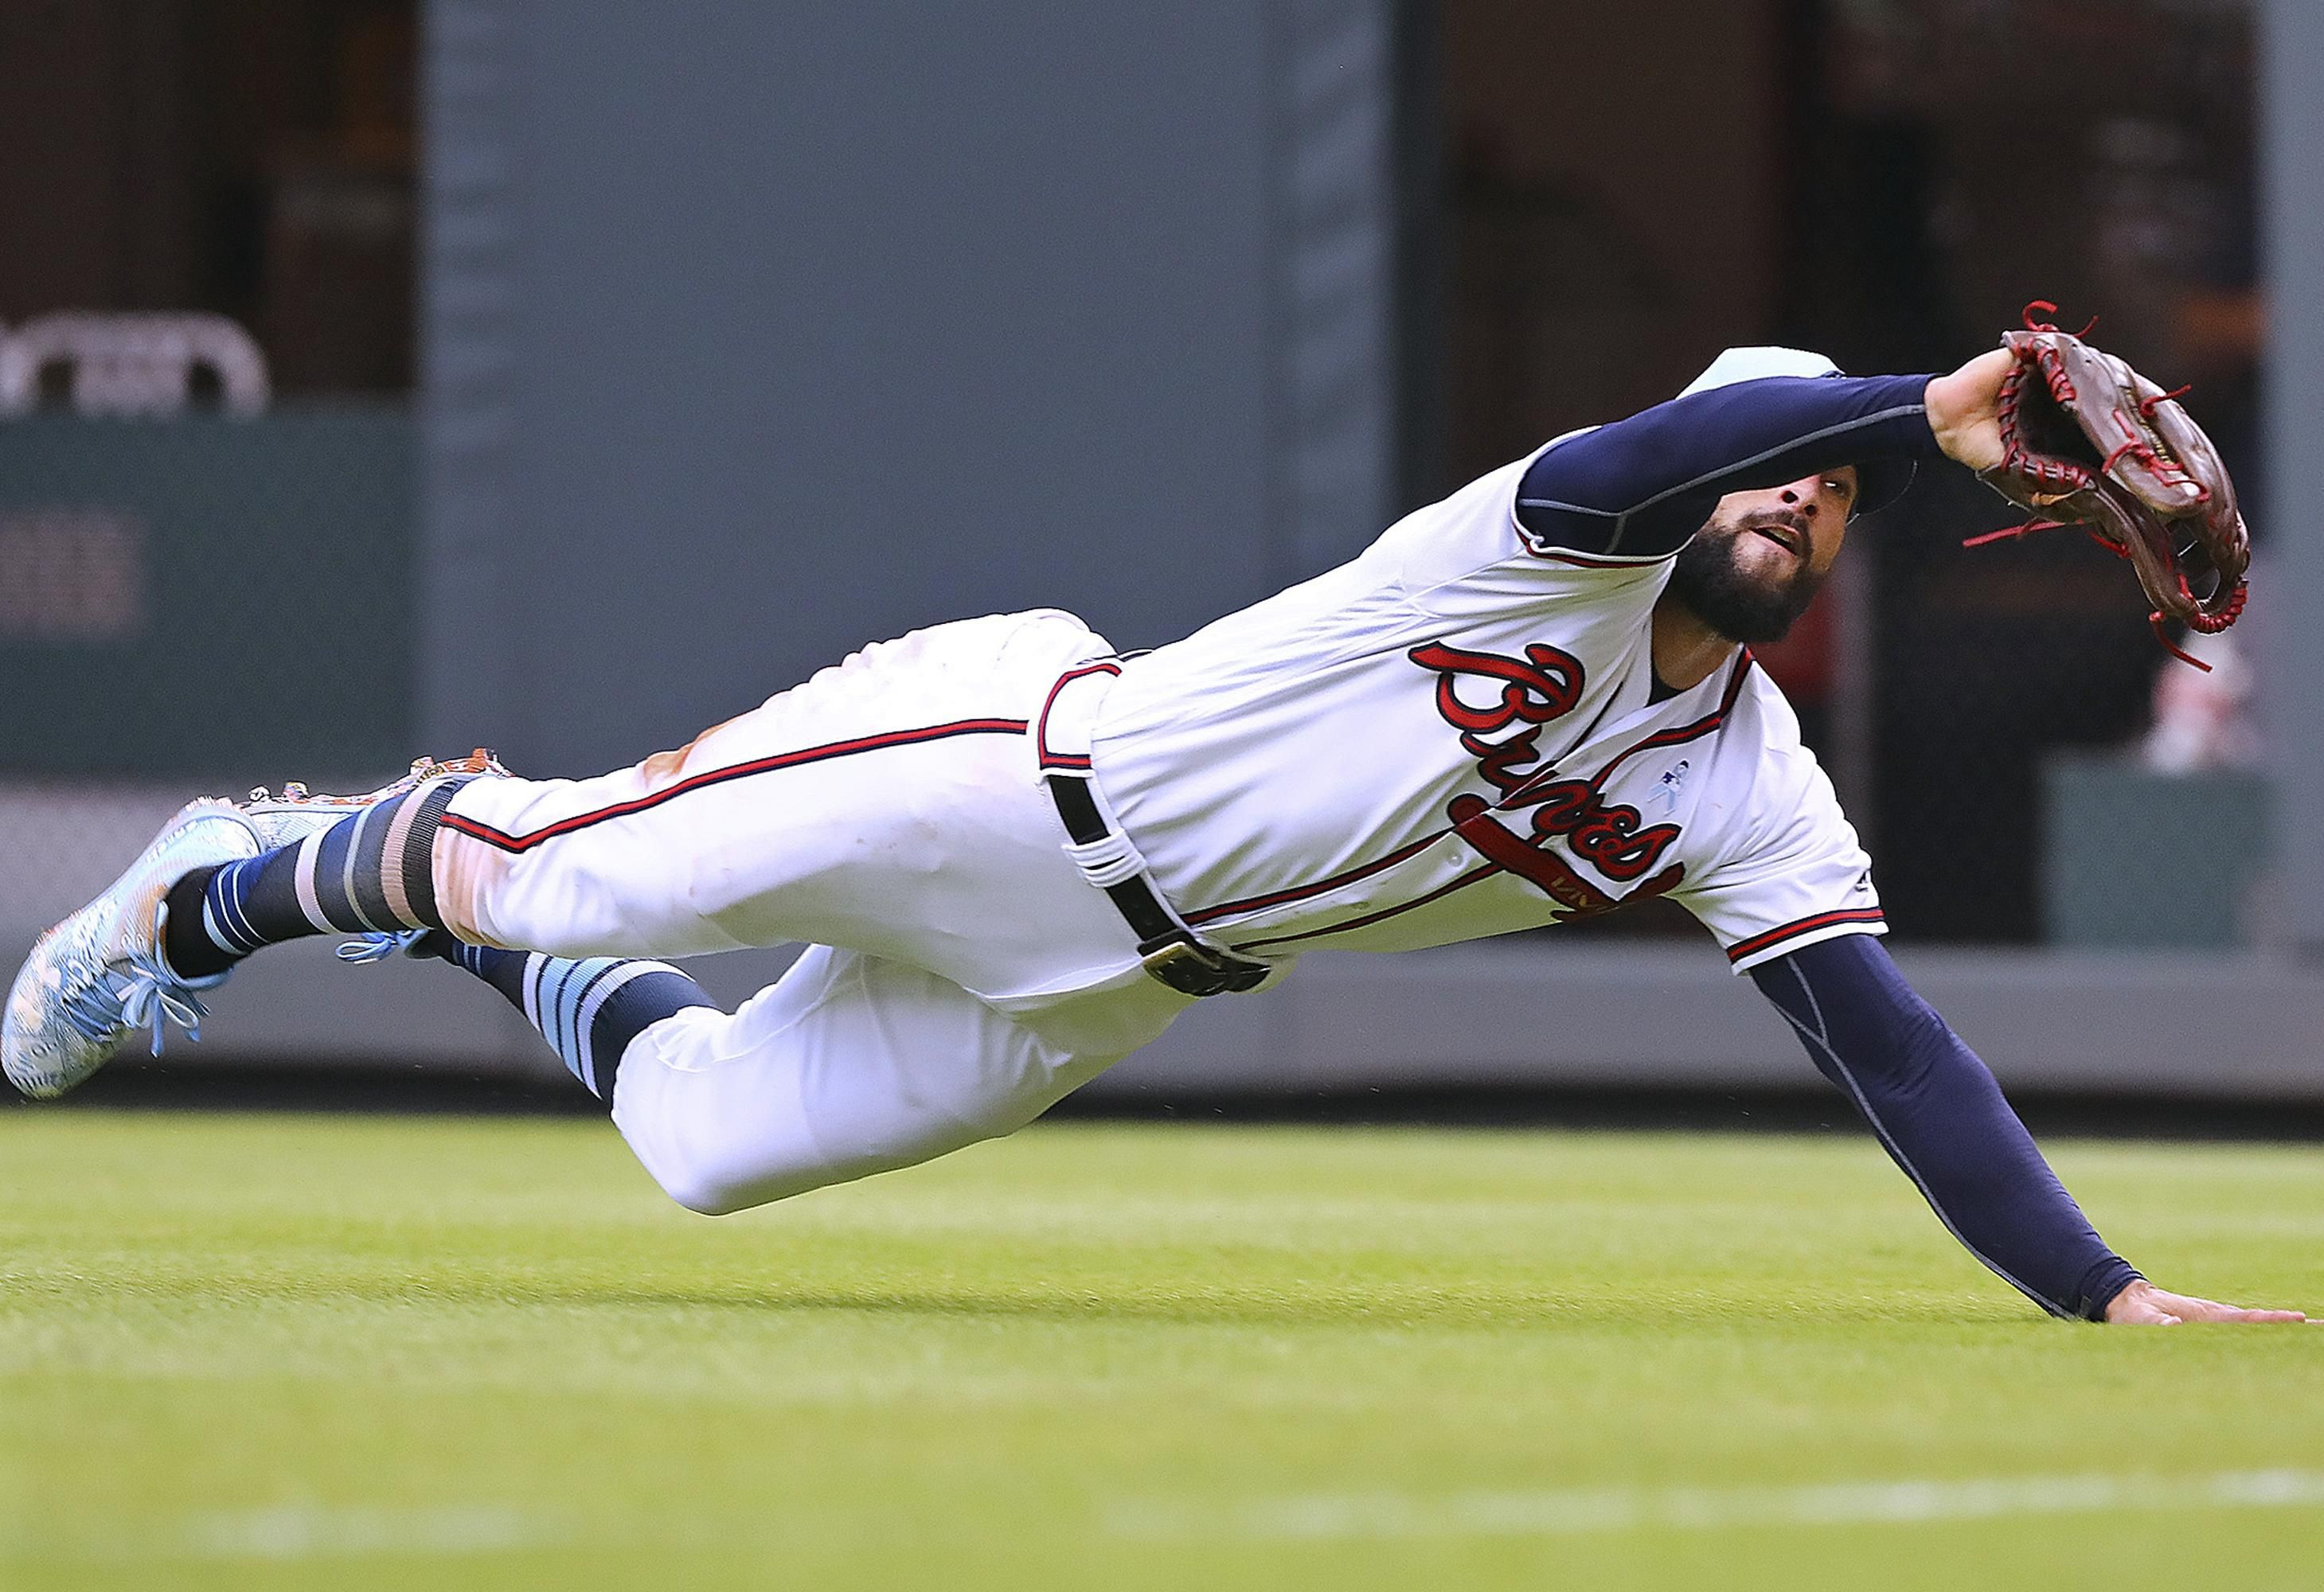 Atlanta Braves Outfielder Nick Markakis Makes A Diving Catch On A Long Fly Ball By San Diego Padres Franmil Reyes In Nick Markakis Atlanta Braves The Outfield